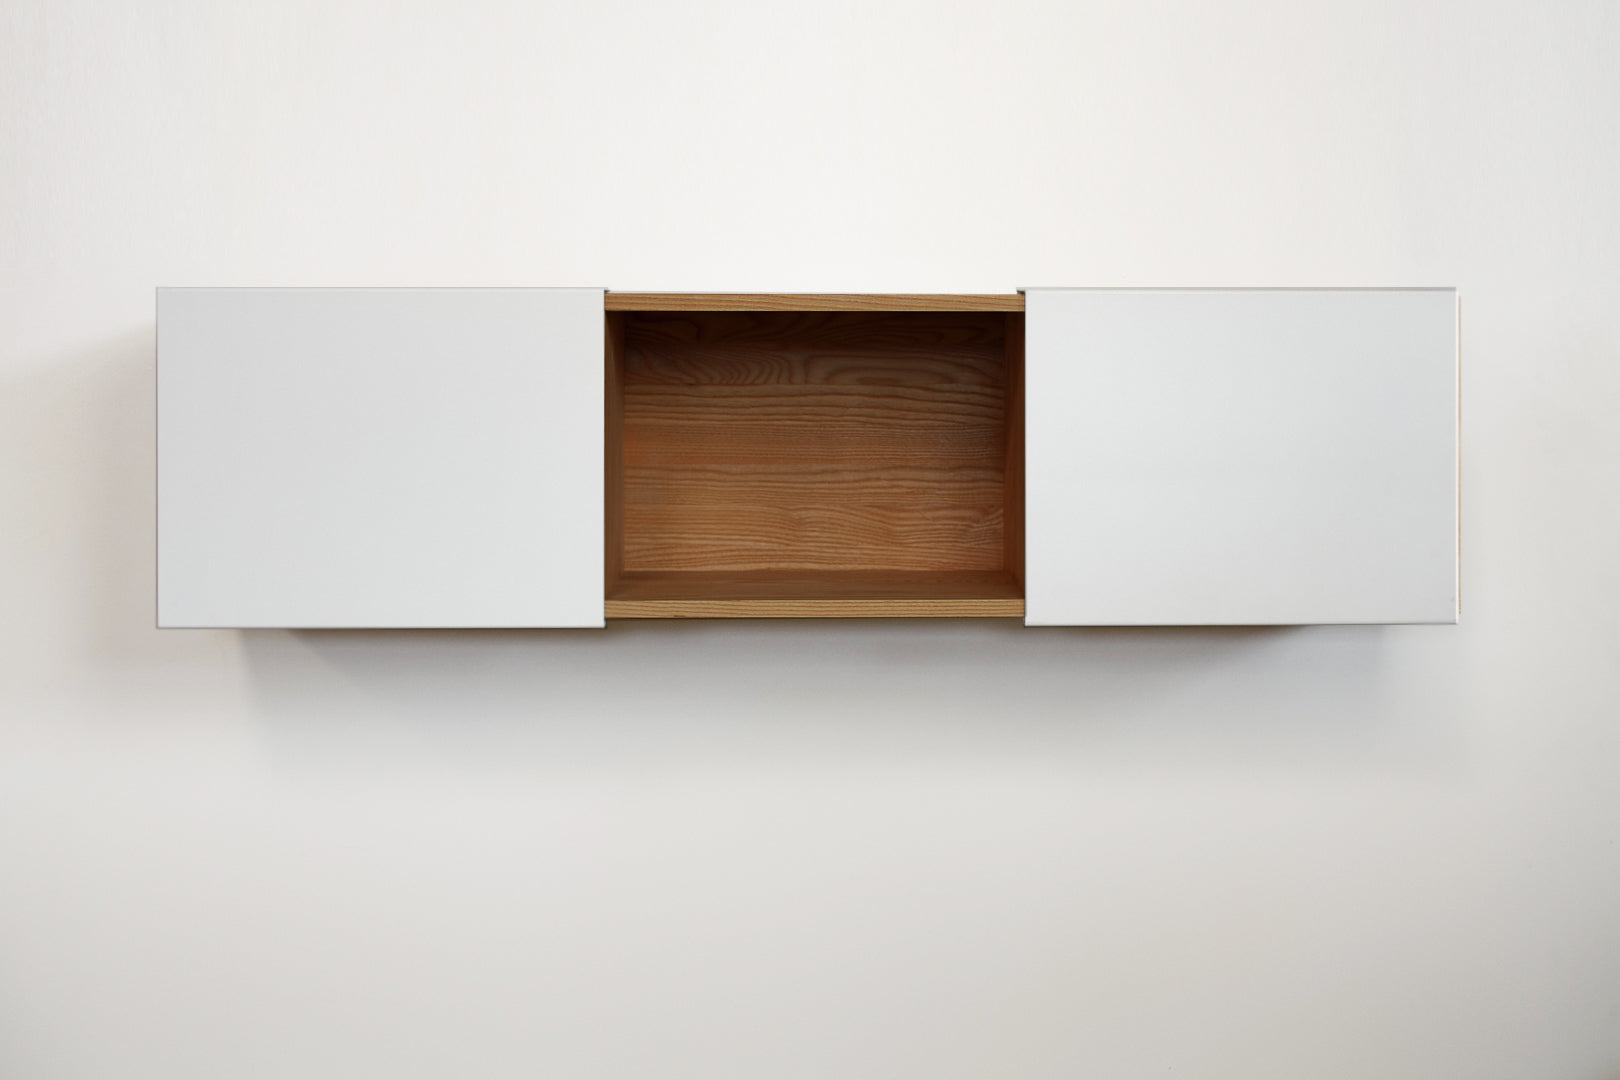 3X Wall Mounted Shelf - English Walnut, White Panel